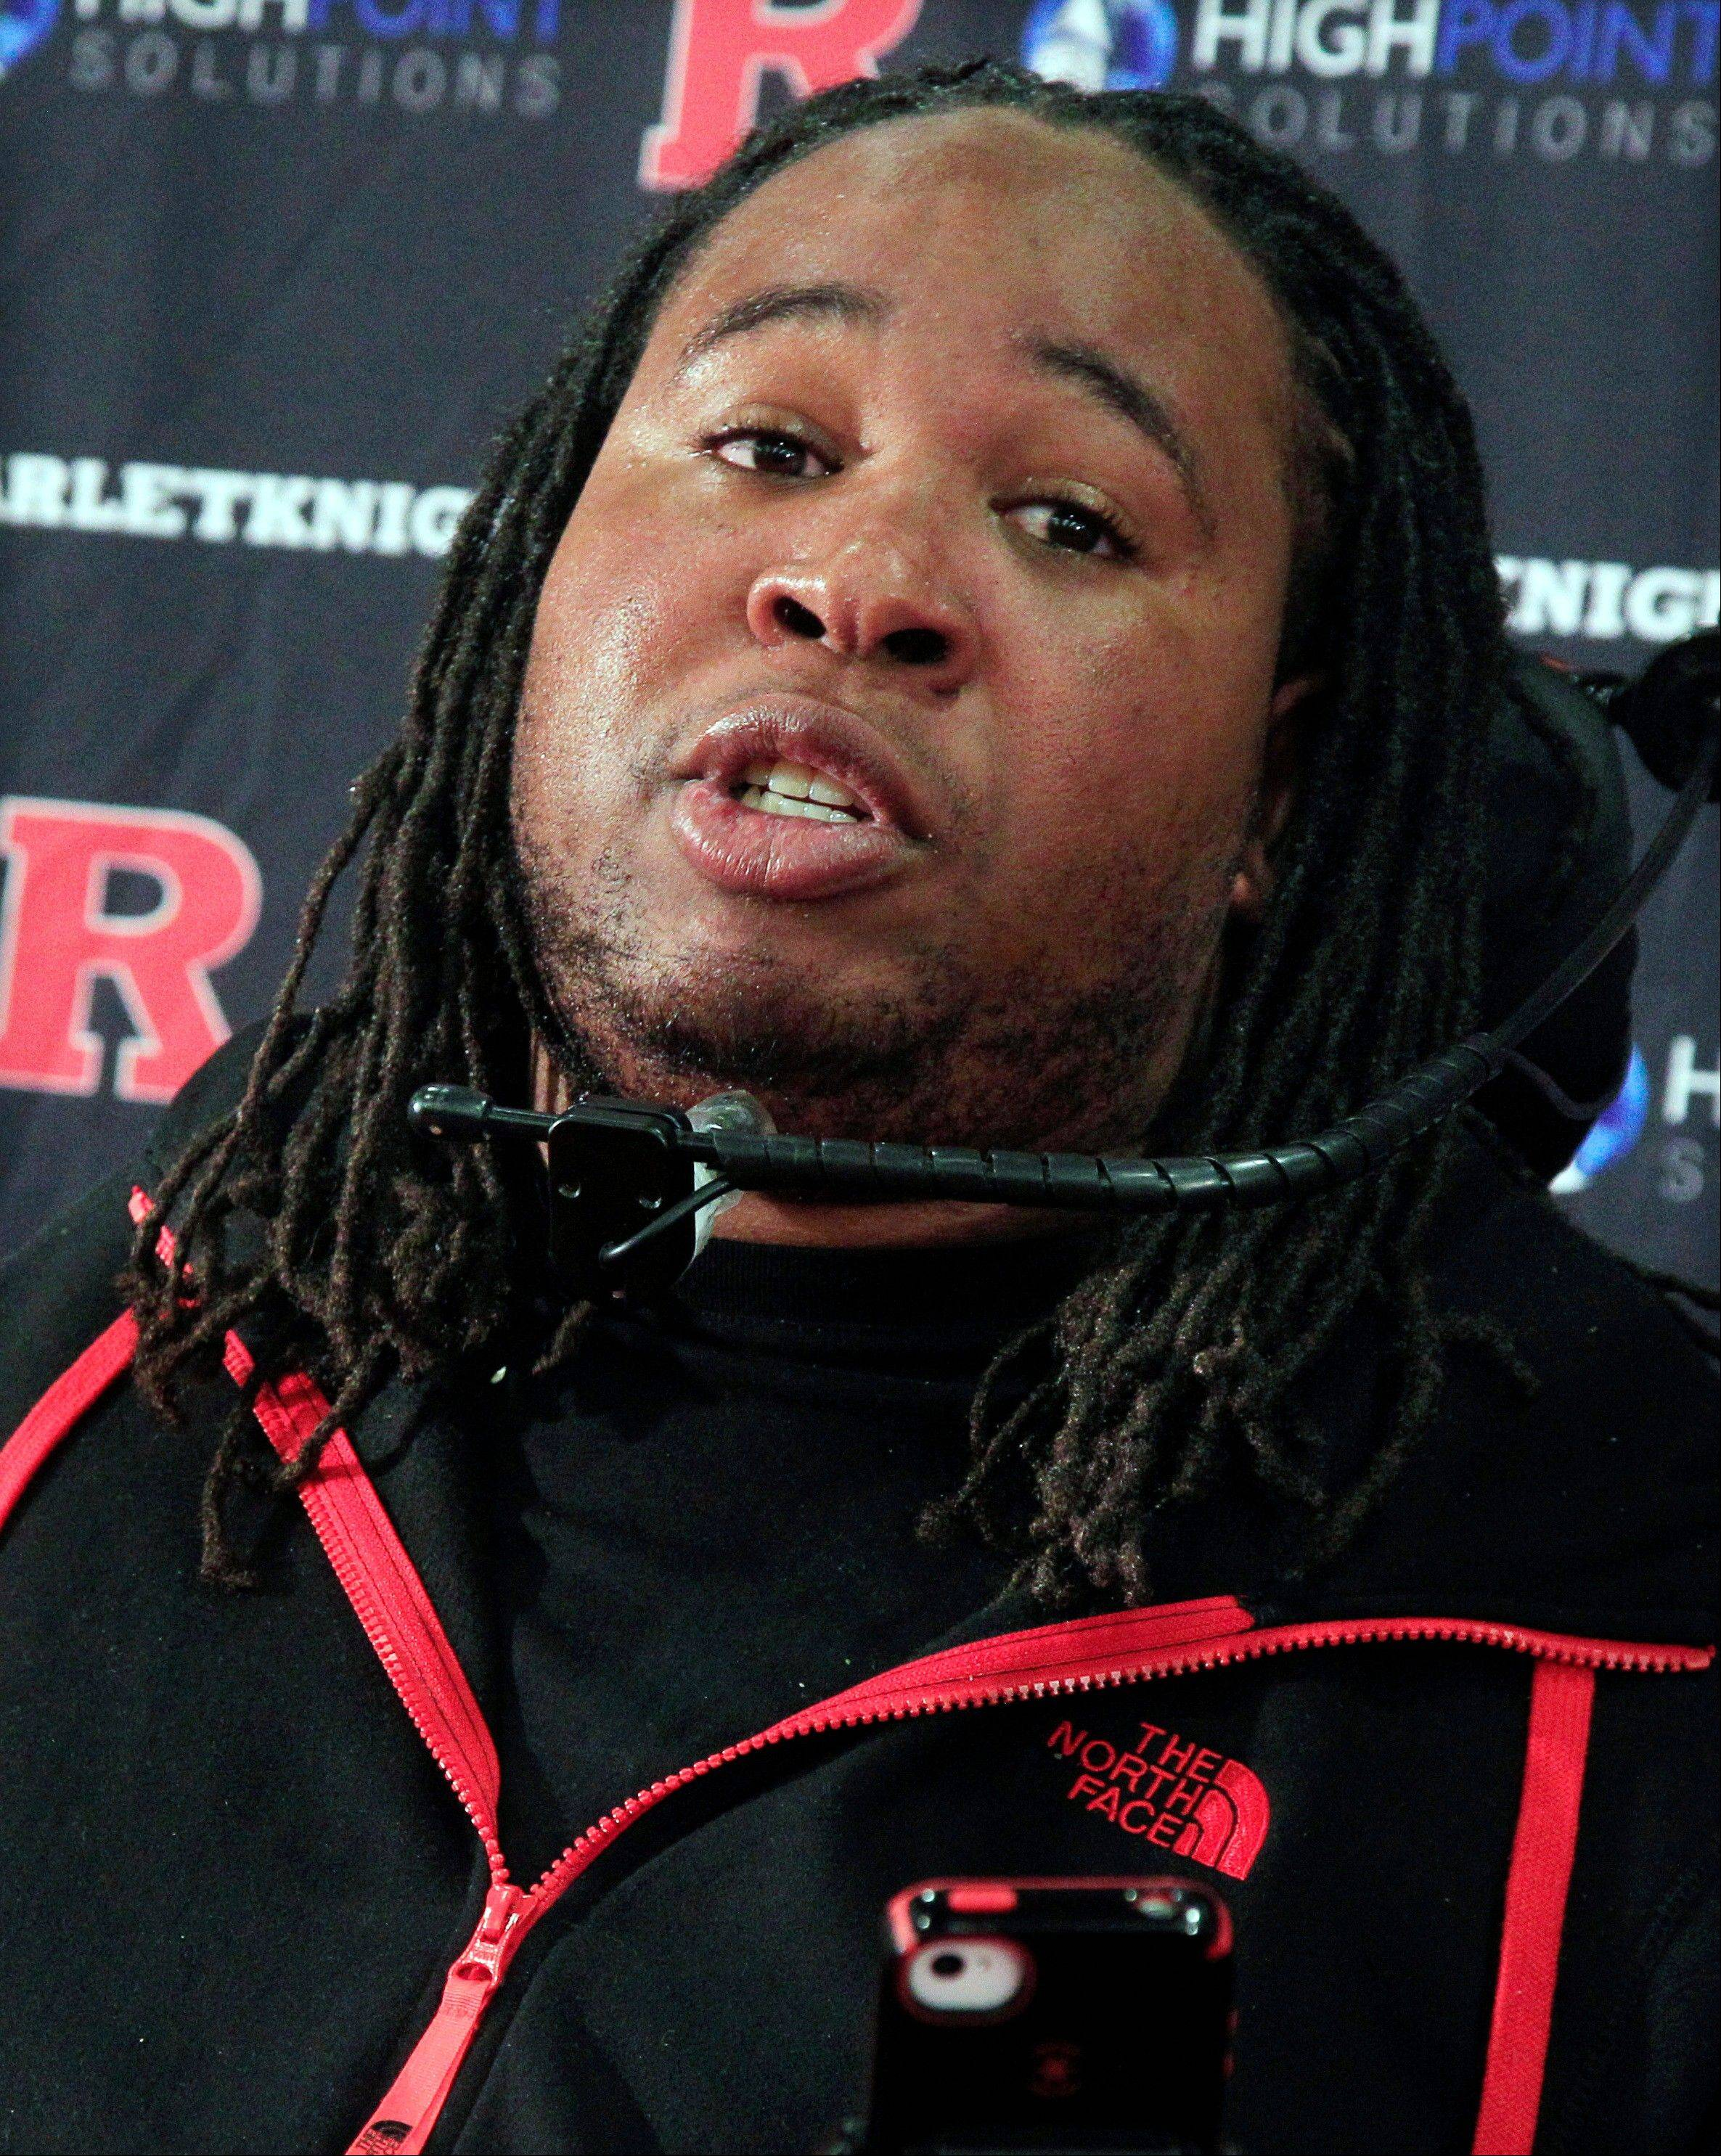 This May 2, 2012 file photo shows paralyzed former Rutgers defensive tackle Eric LeGrand answering a question during a news conference in Piscataway, N.J. Hurdler Lolo Jones trash-talked about head injuries to former Rutgers football player Eric LeGrand, Tuesday, Oct. 2, 2012, after he jokingly challenged her to a race on Twitter. Jones didn�t know the defensive tackle was paralyzed in a game.